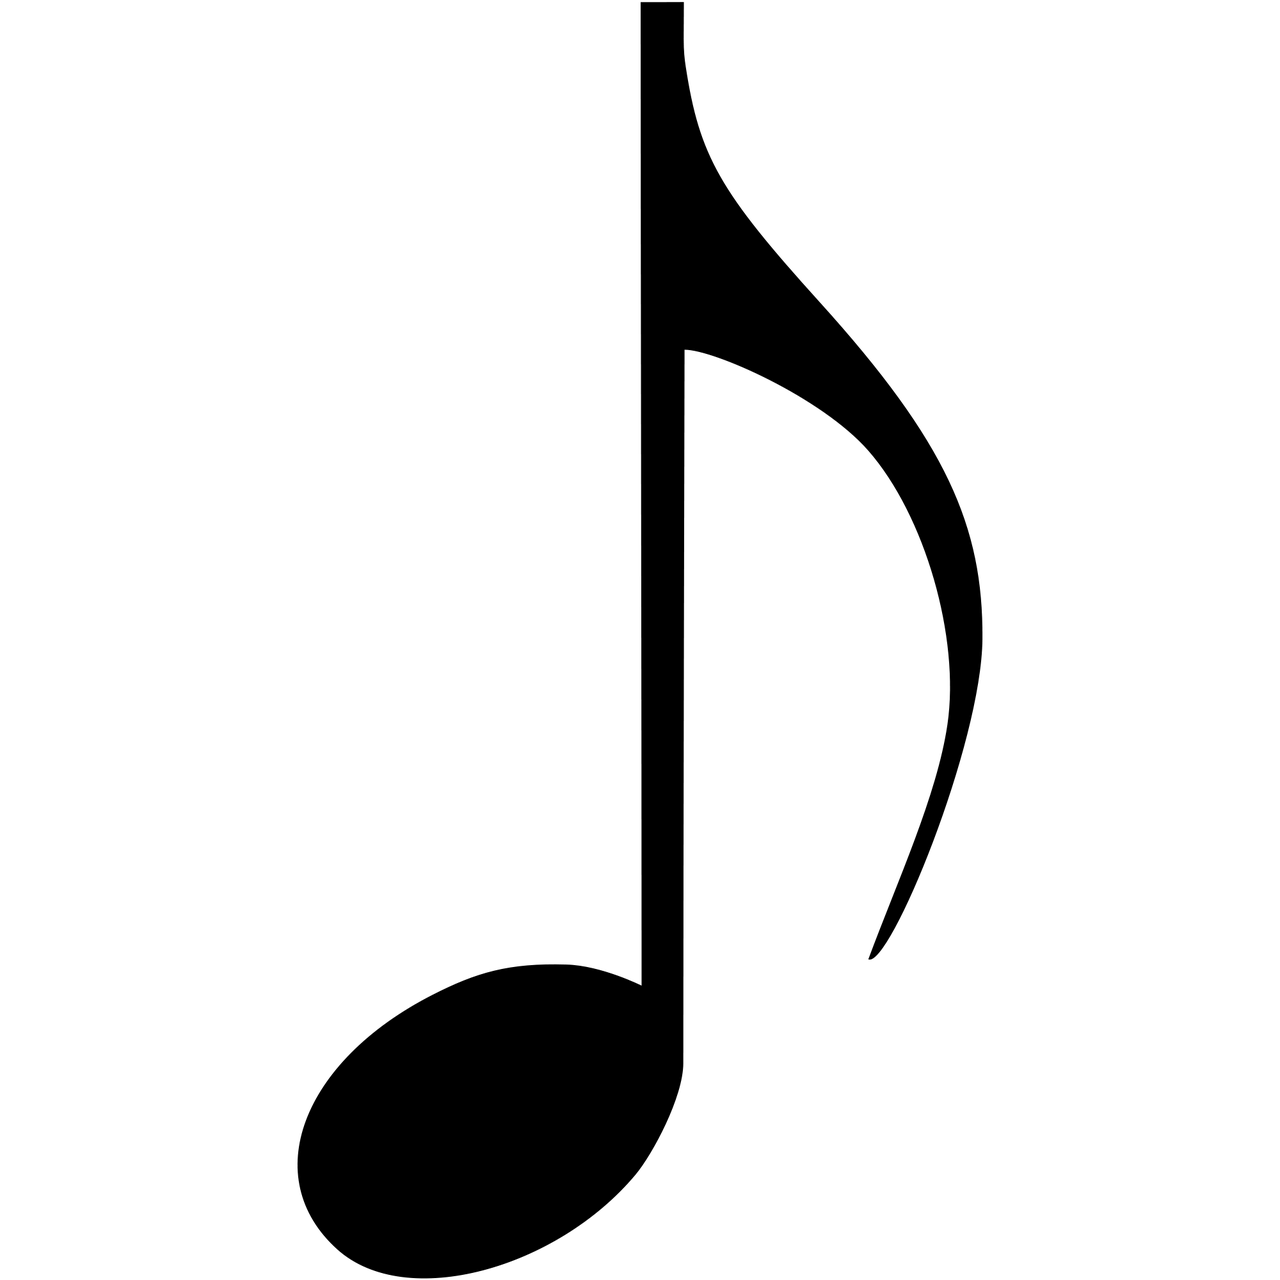 Musical note eighth transparent. Notes clipart misic